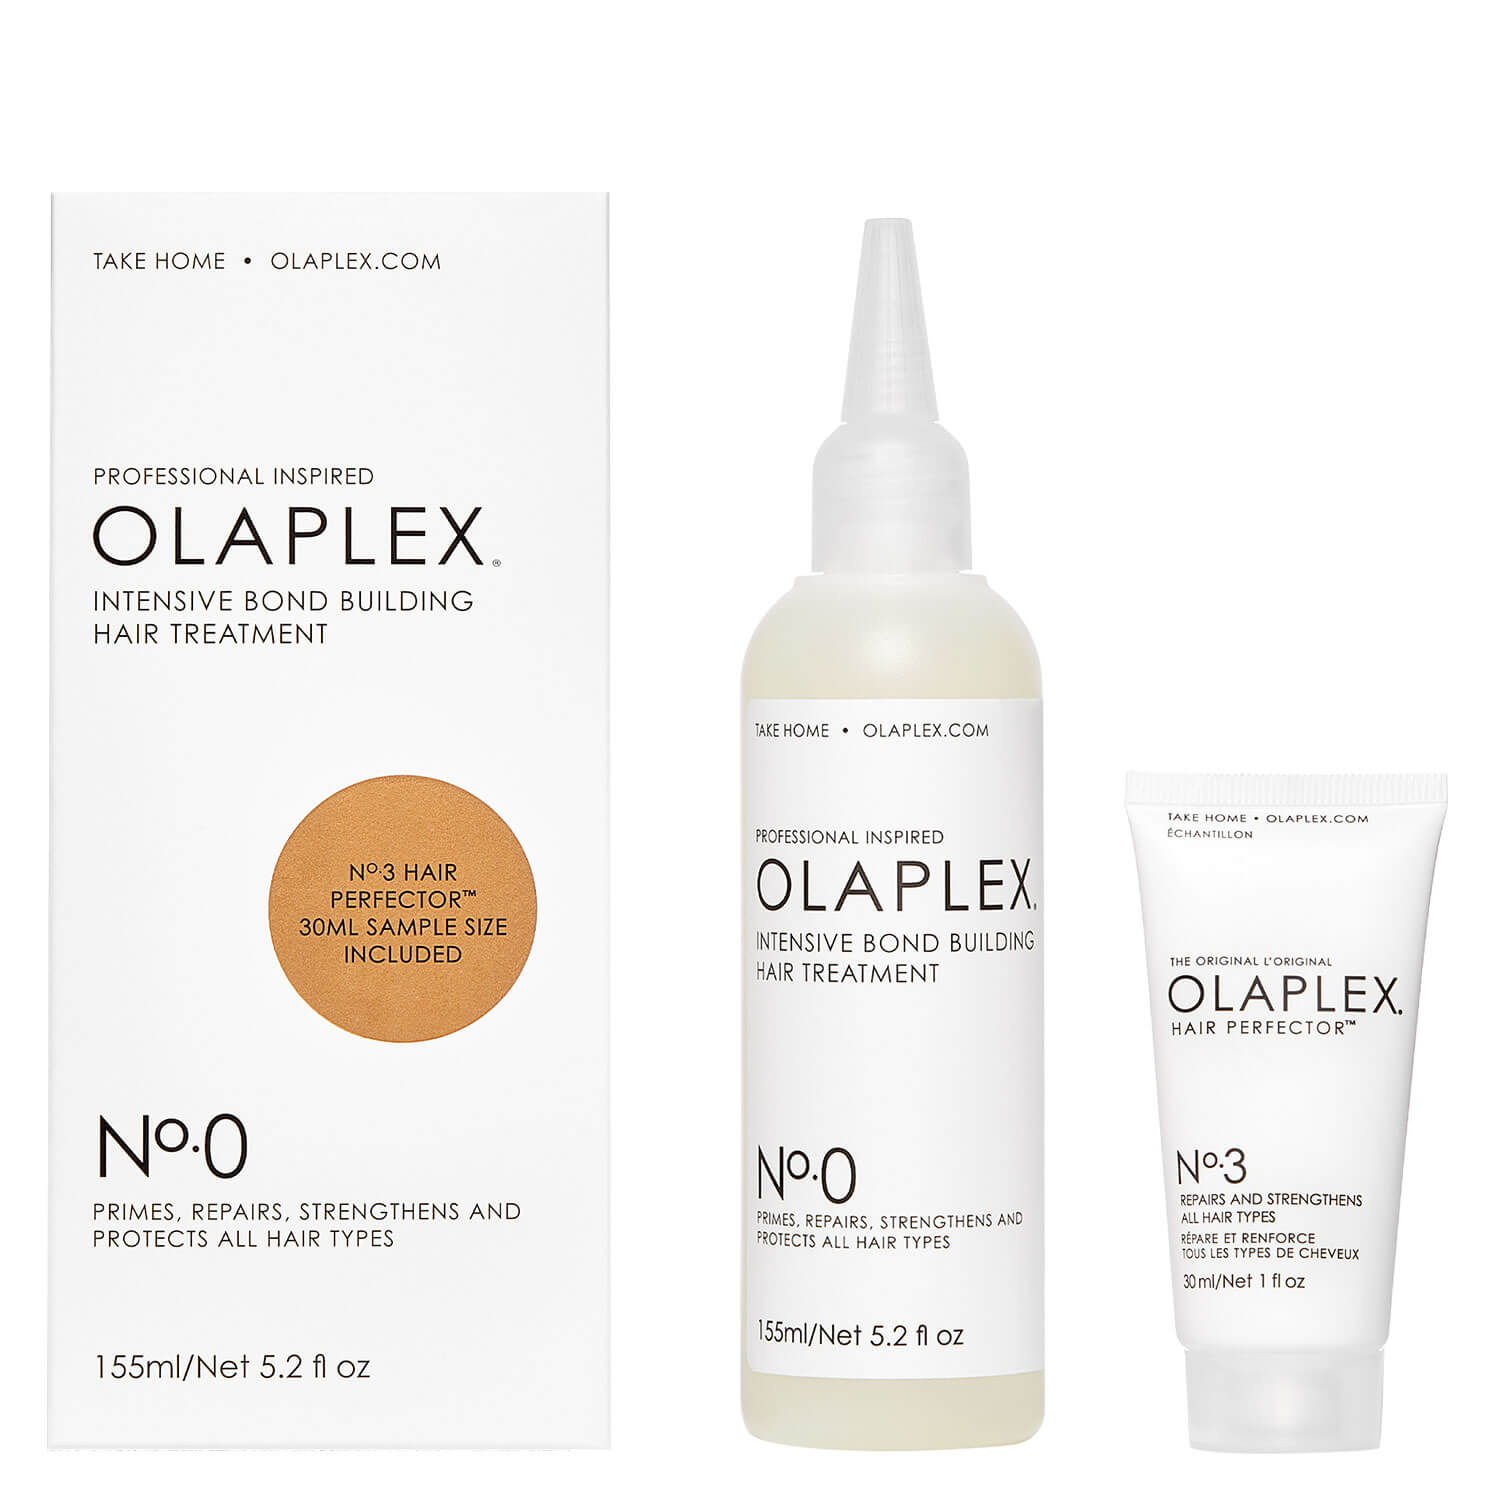 Olaplex - Intensive Bond Building Hair Treatment No. 0 + No. 3 For Free